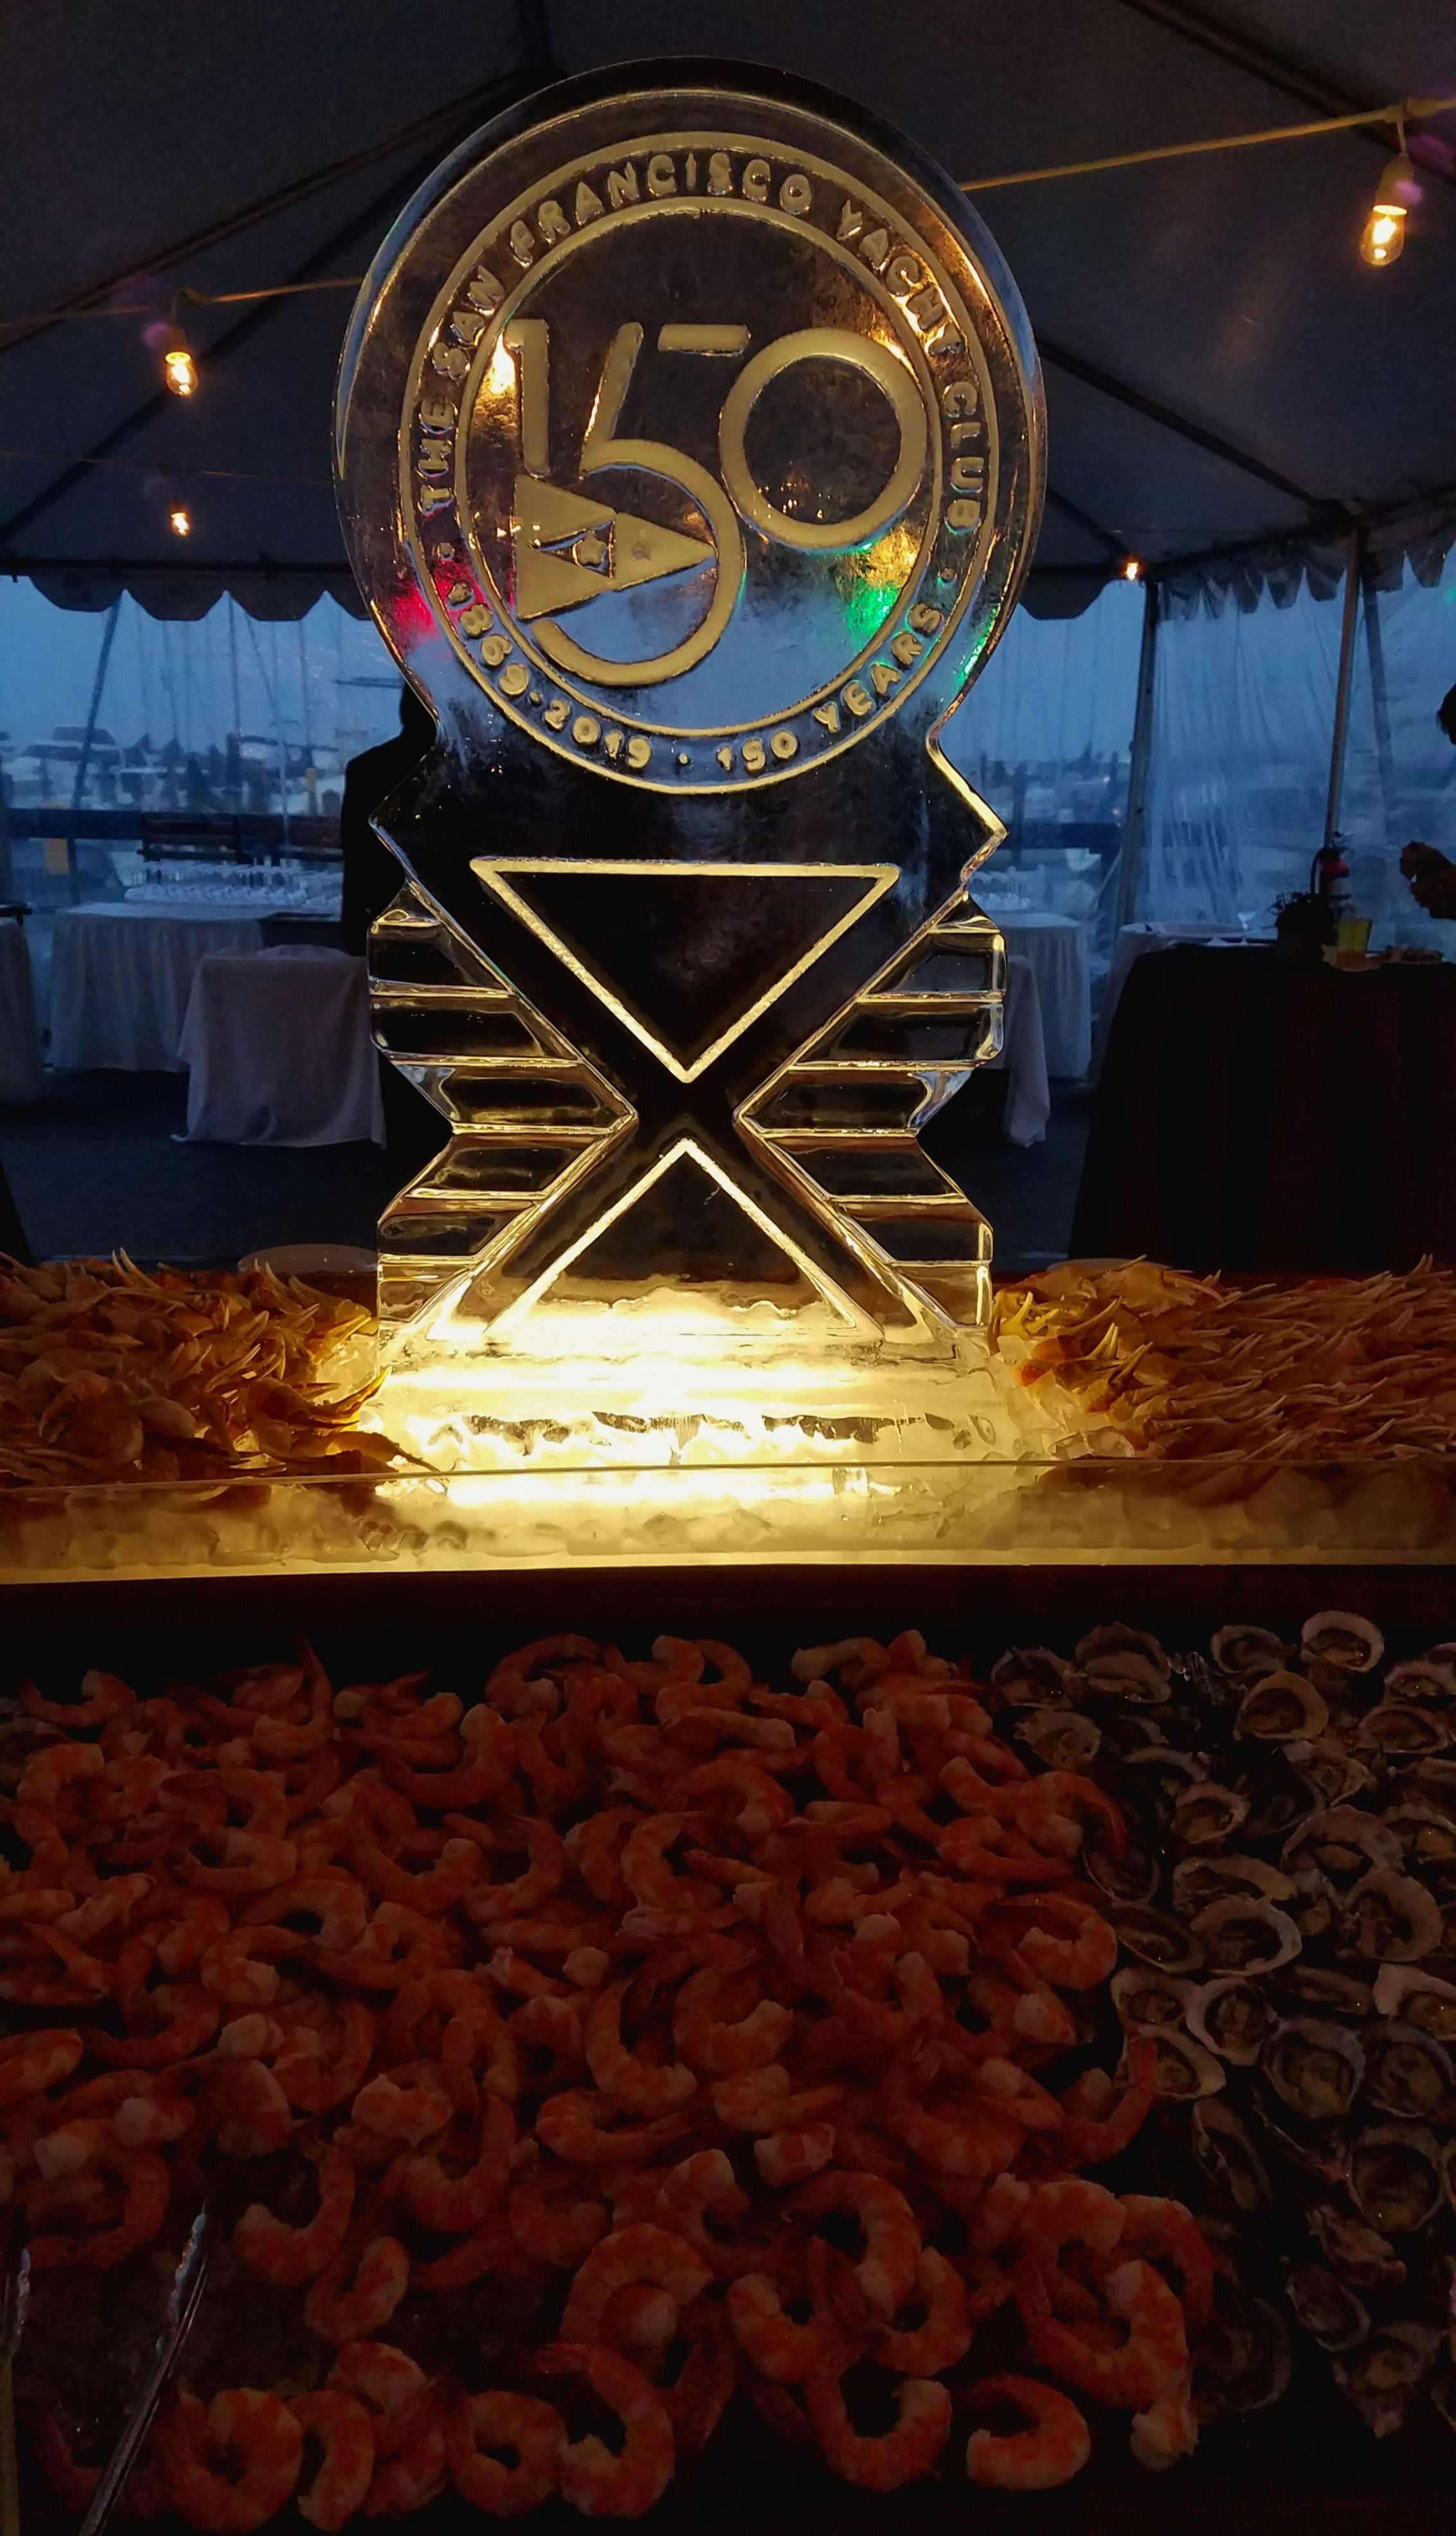 The 150 year anniversary celebration at the club was fabulous, especially the seafood buffet